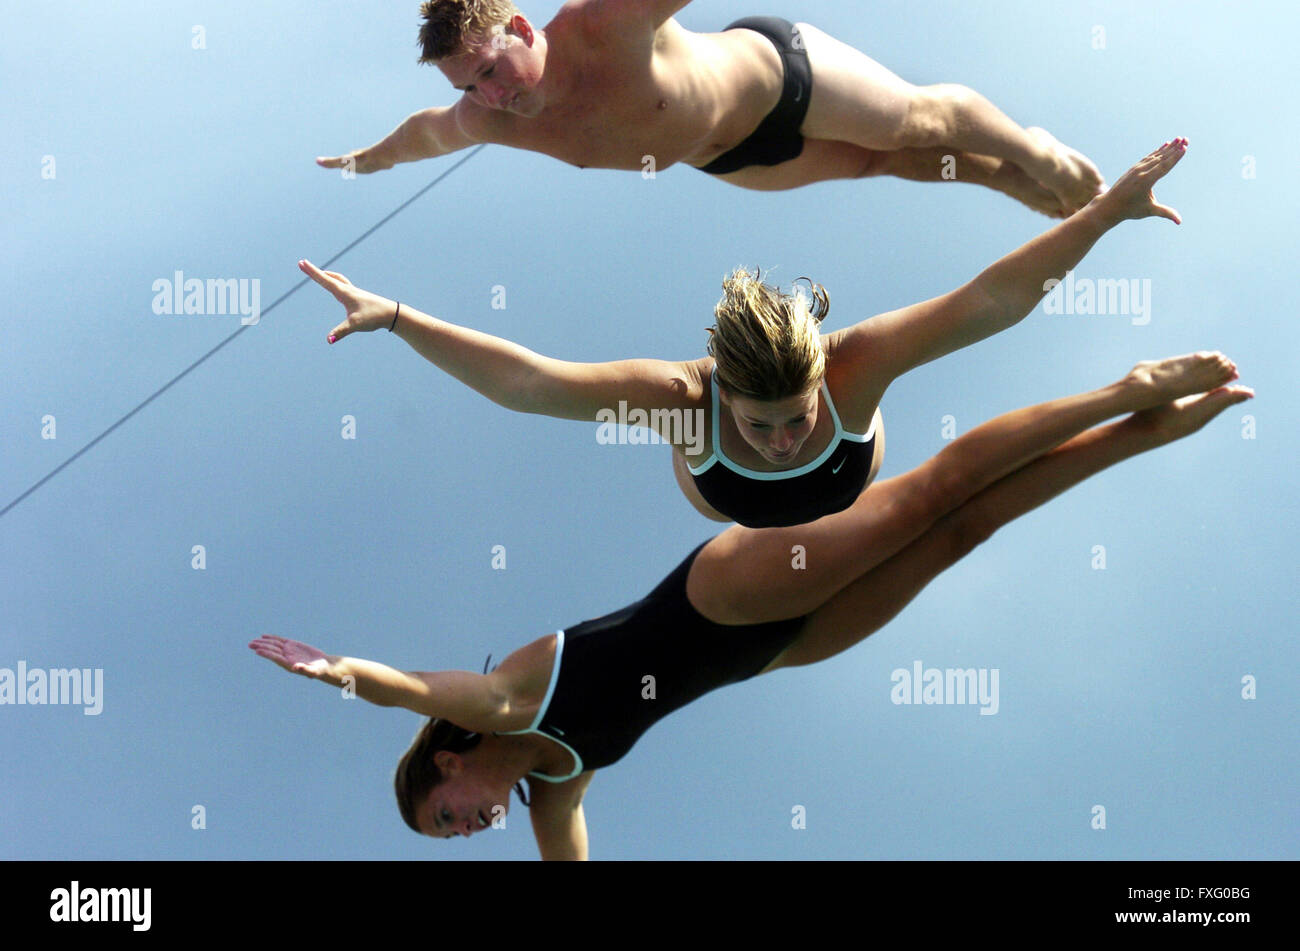 Springfield, Illinois, USA. 6th Sep, 2002. Members of the Extreme Team Divers for Sacco Shows: RYAN PESCHKE, top, - Stock Image